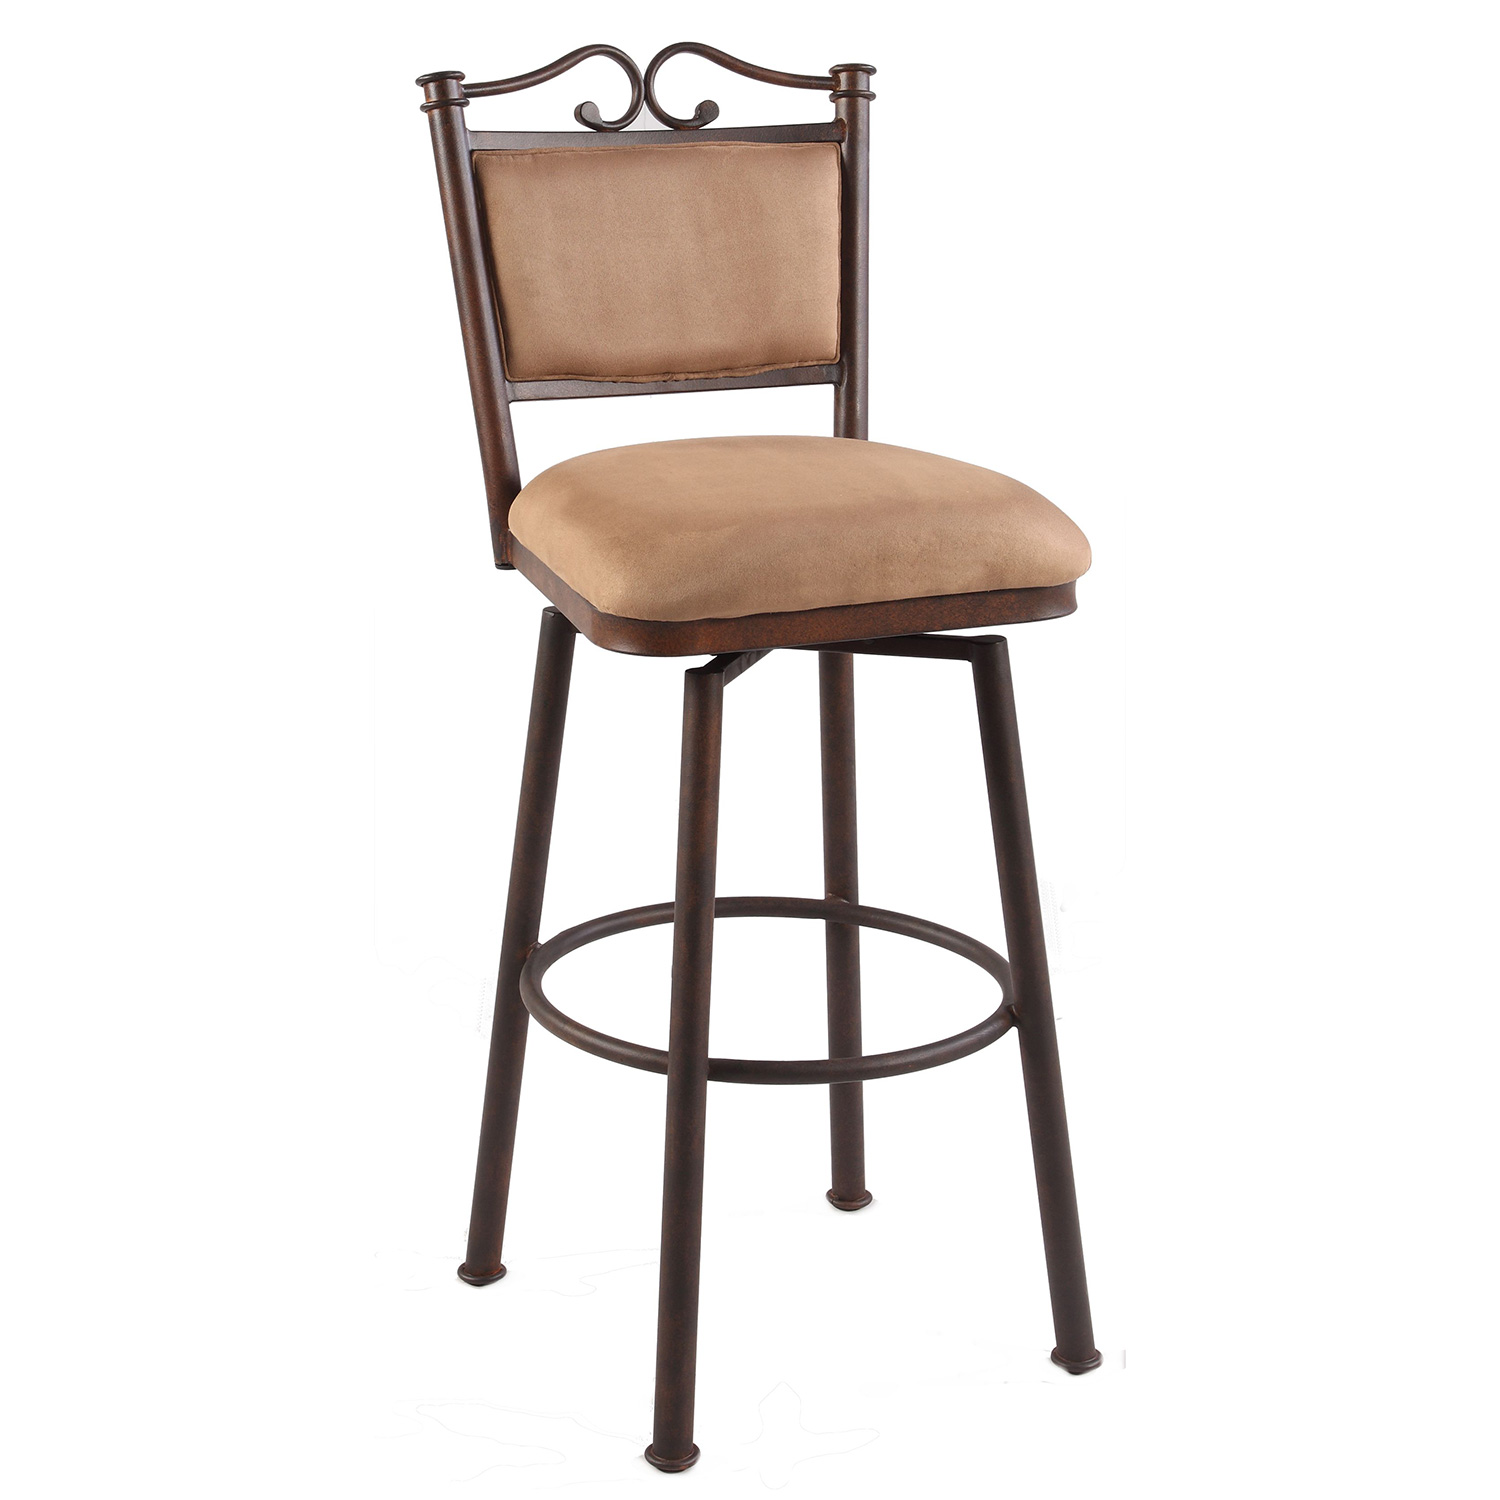 Marvelous 30 Memory Return Swivel Bar Stool In Taupe Suede Microfiber By Chintaly Imports Dailytribune Chair Design For Home Dailytribuneorg